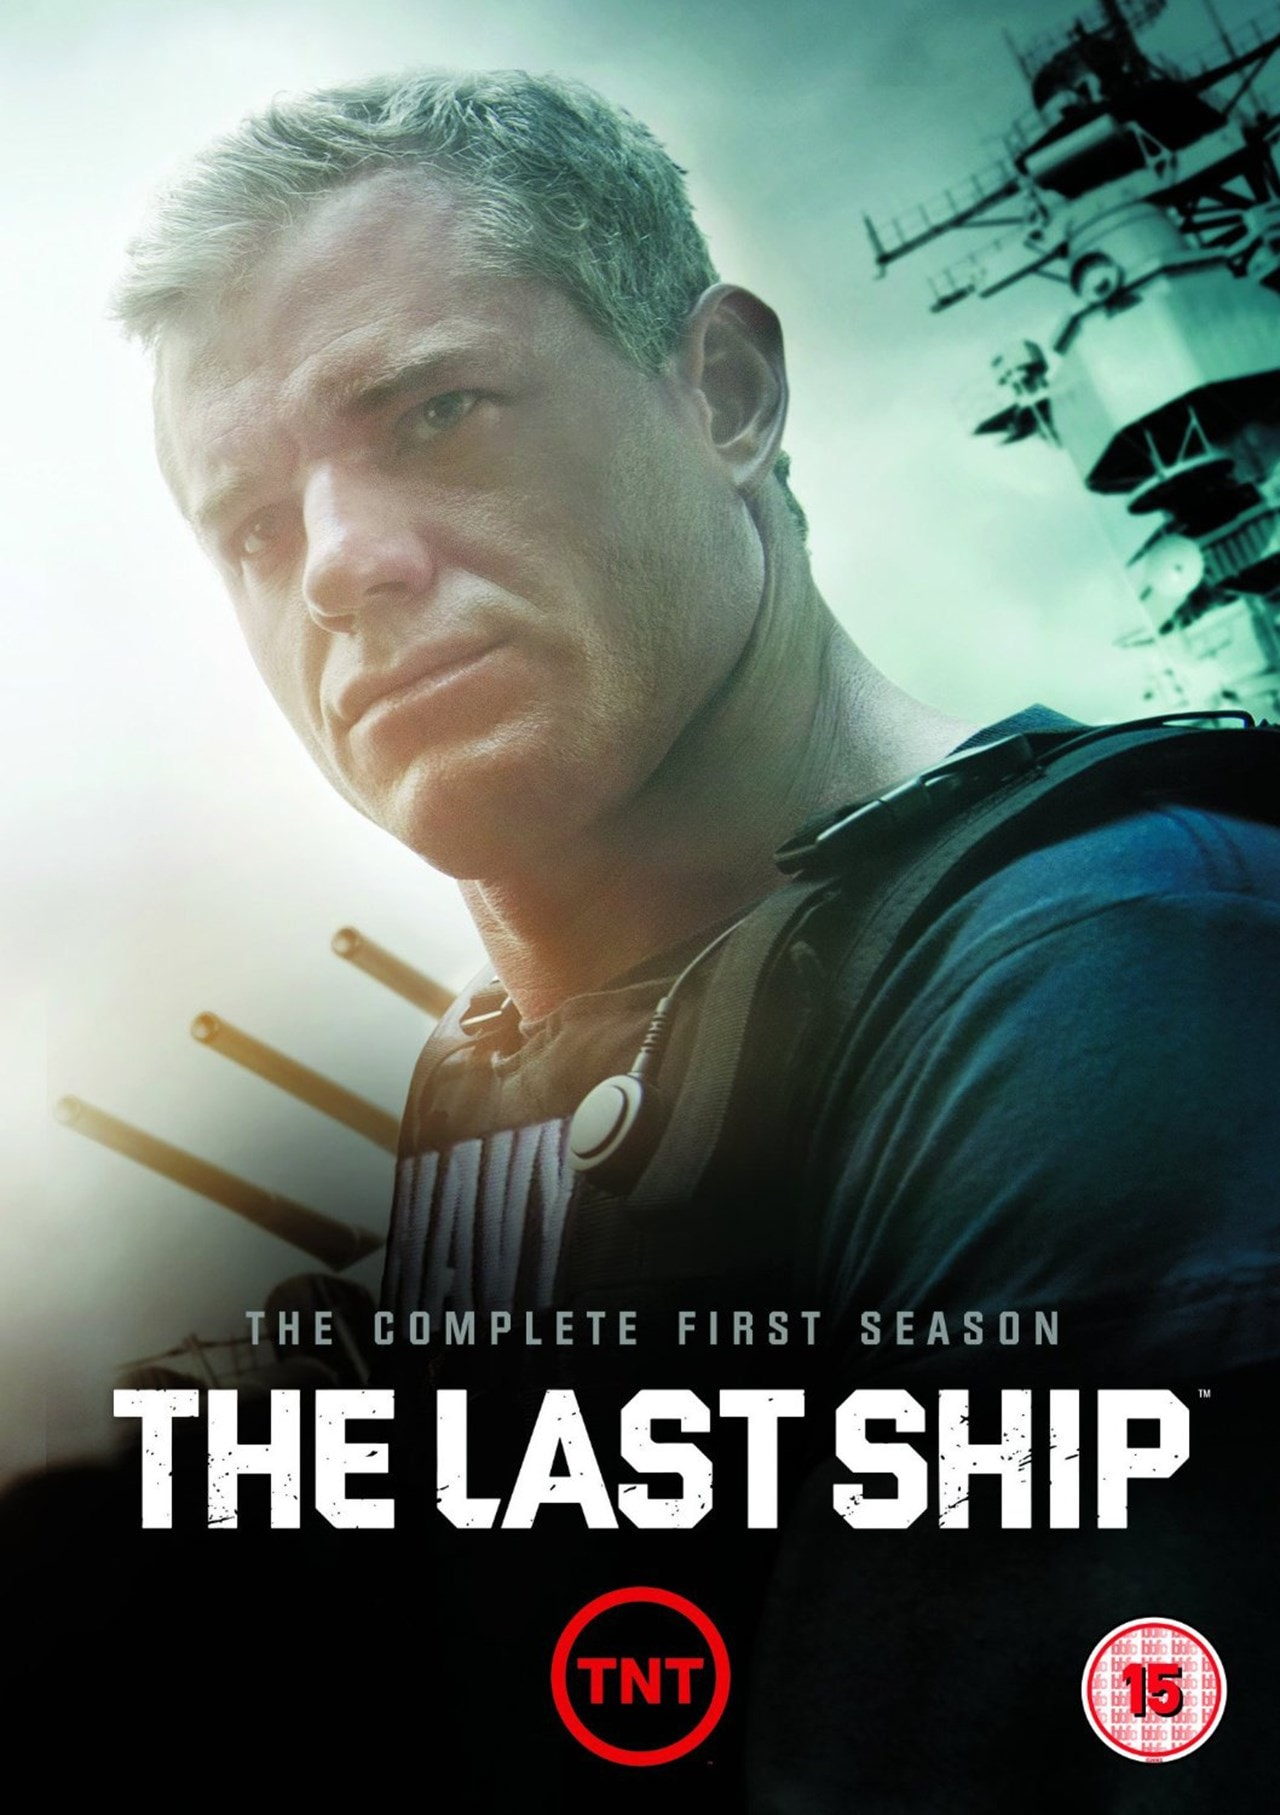 The Last Ship: The Complete First Season - 1